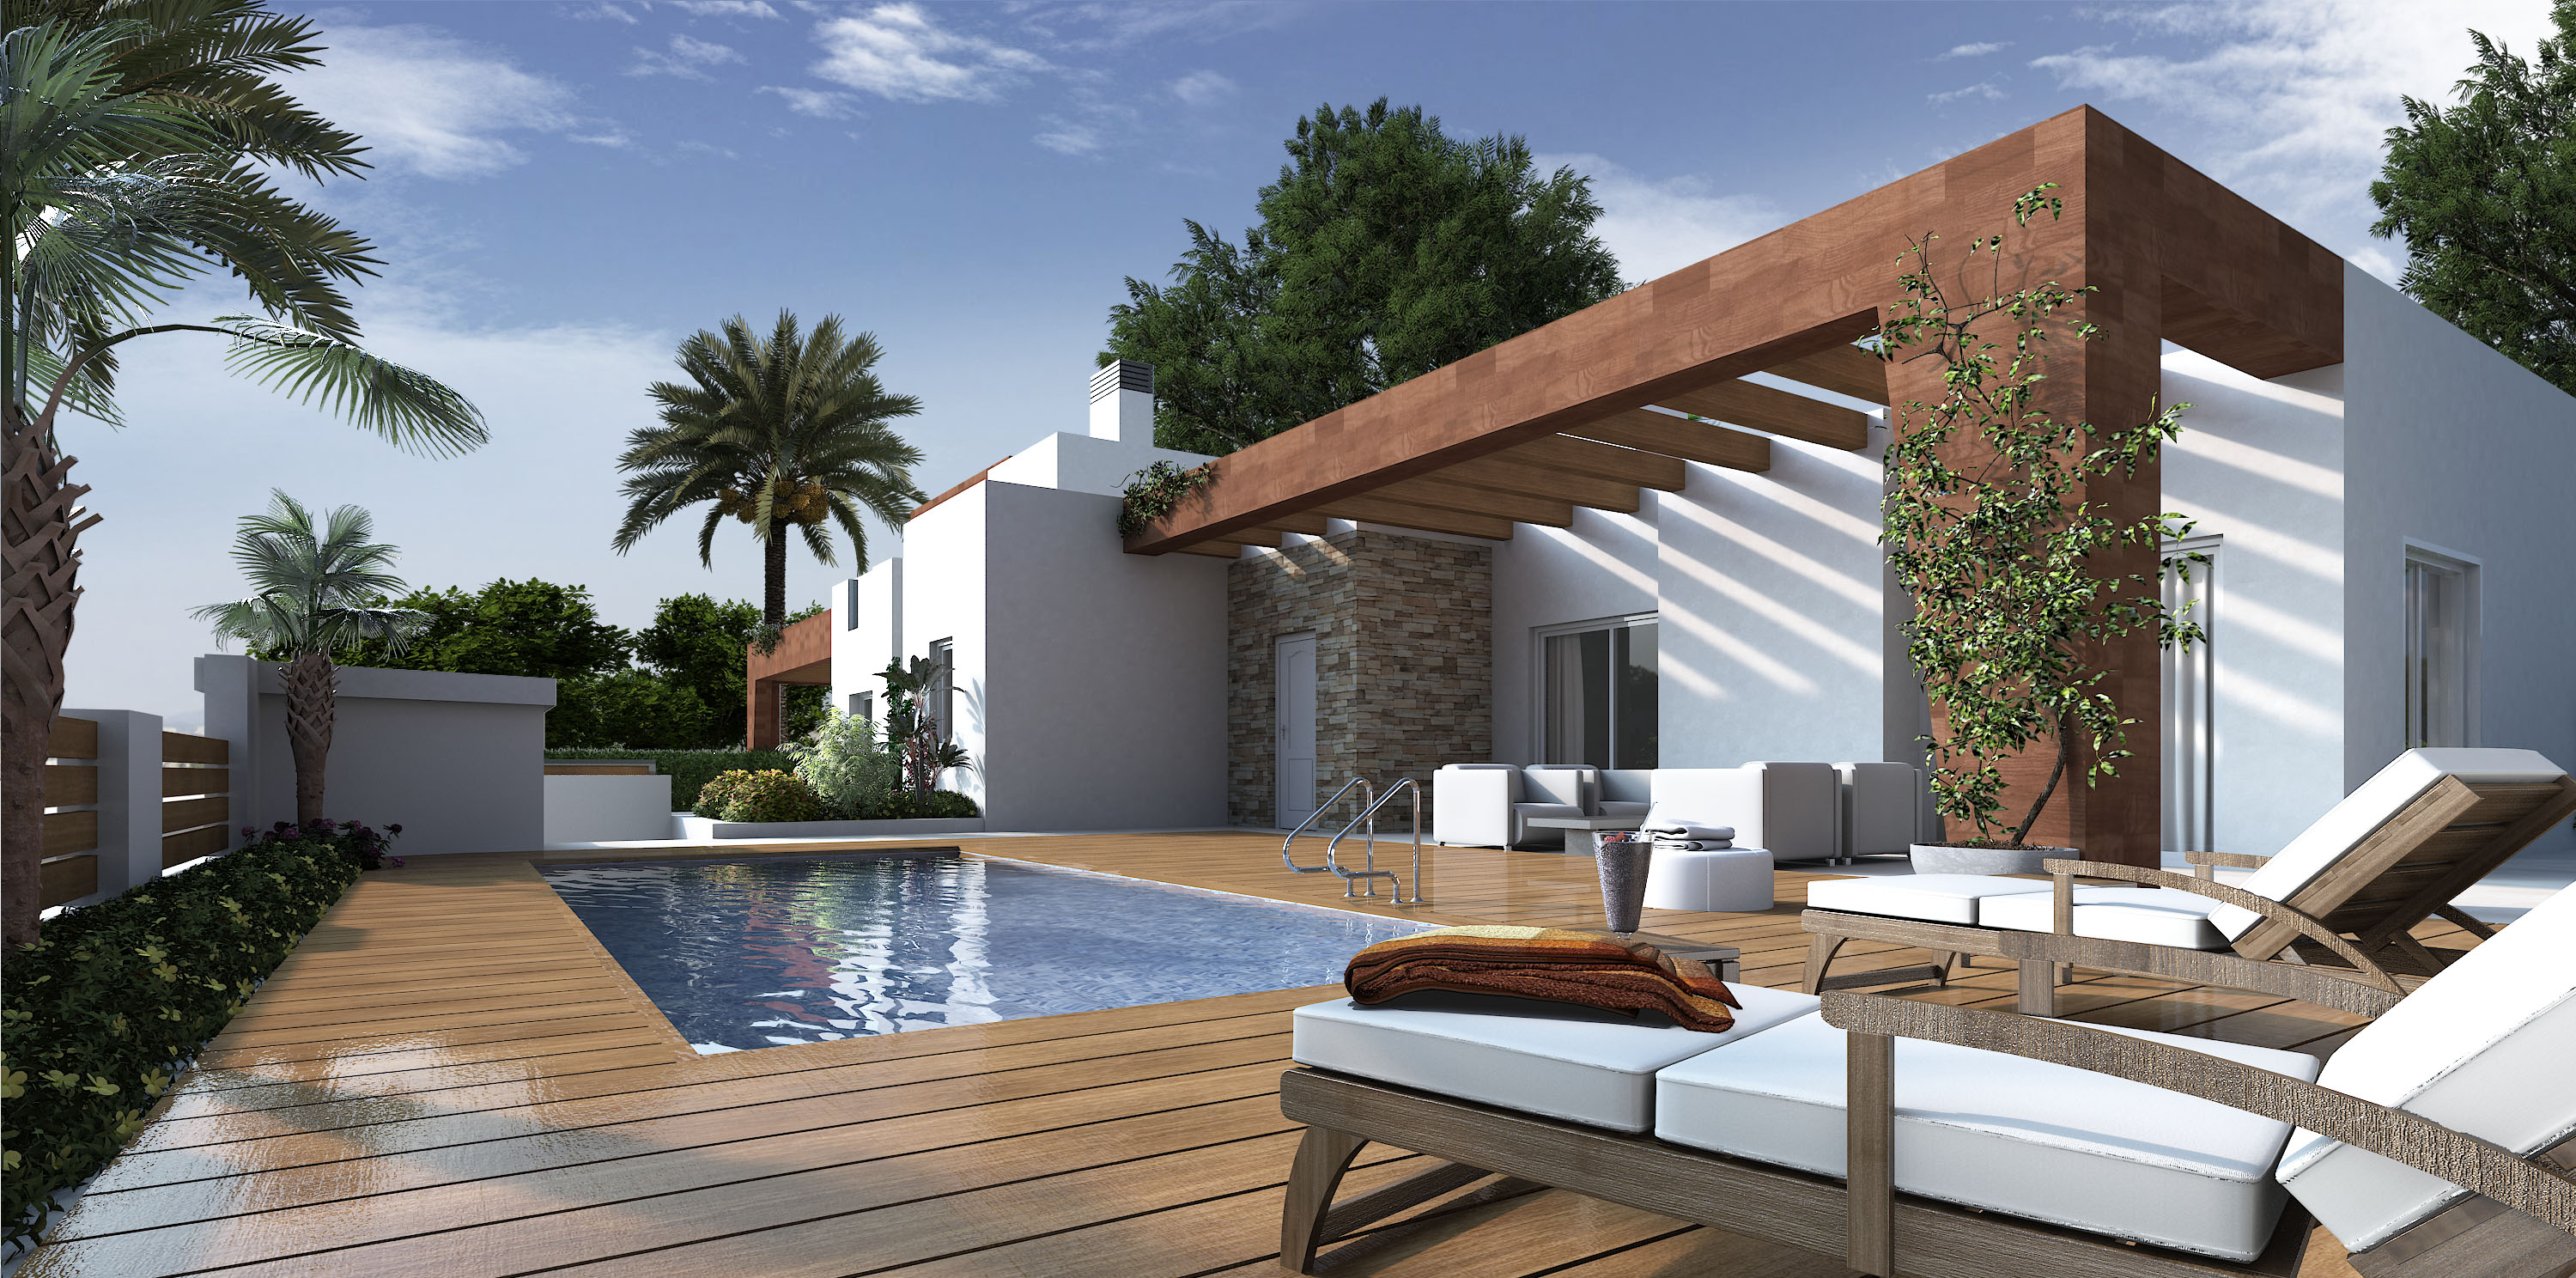 Residencial New Monteolivo